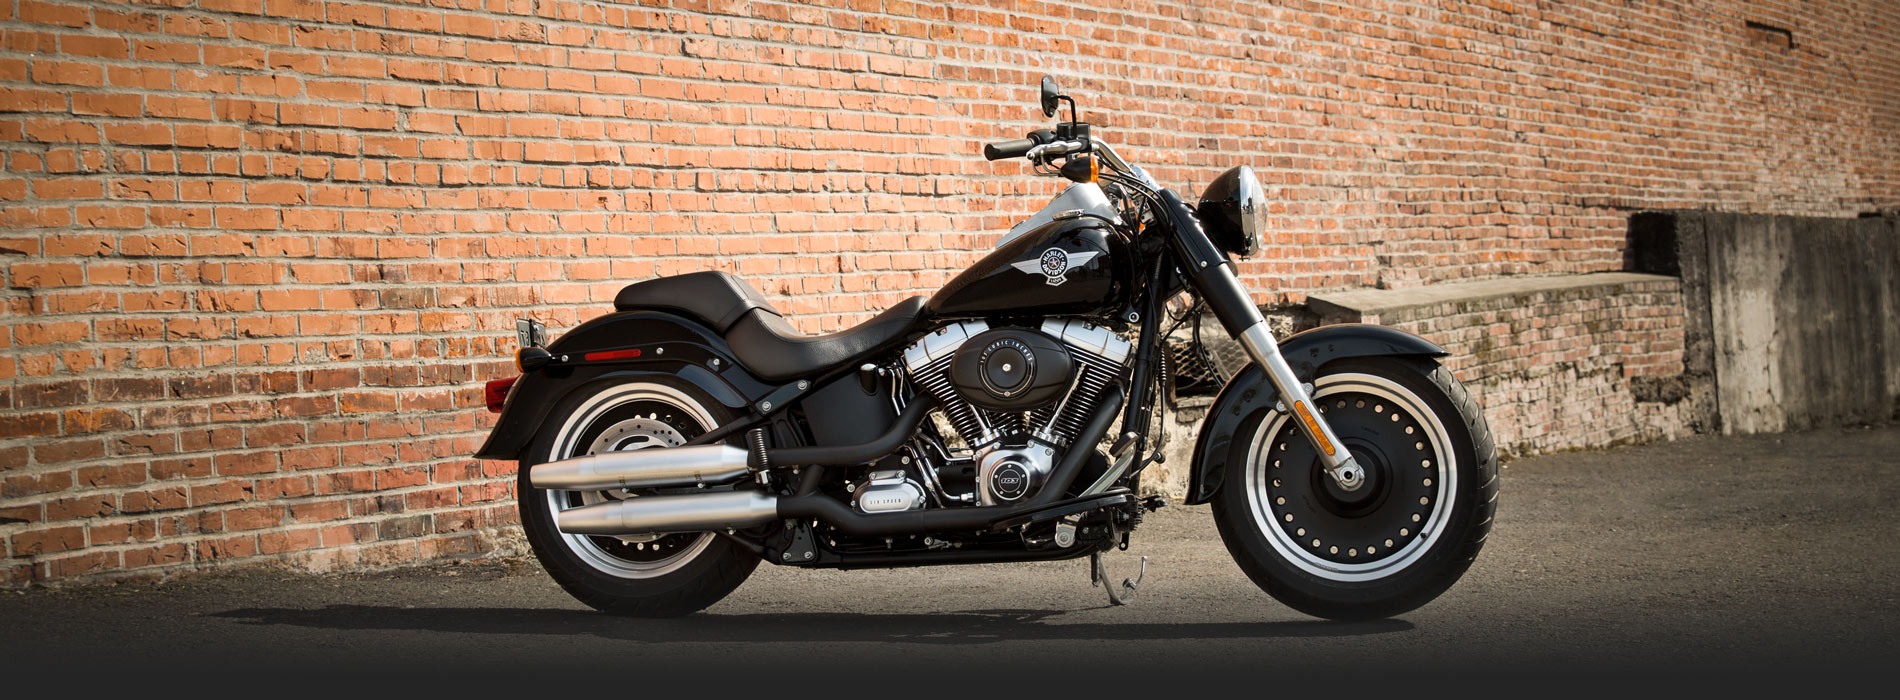 harley davidson harley davidson fat boy moto zombdrive com. Black Bedroom Furniture Sets. Home Design Ideas